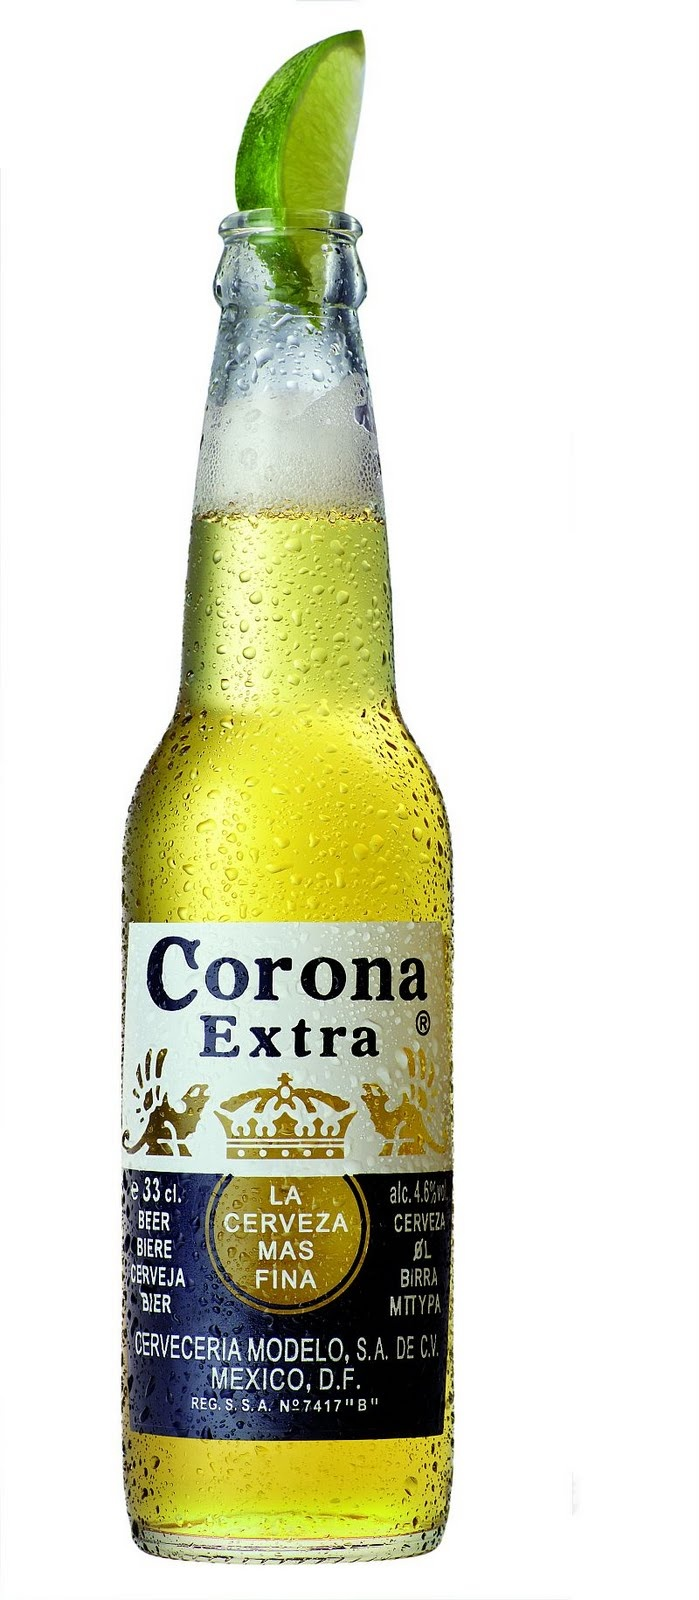 Always could depend on this beer....whether at the beach or with Mexican food.